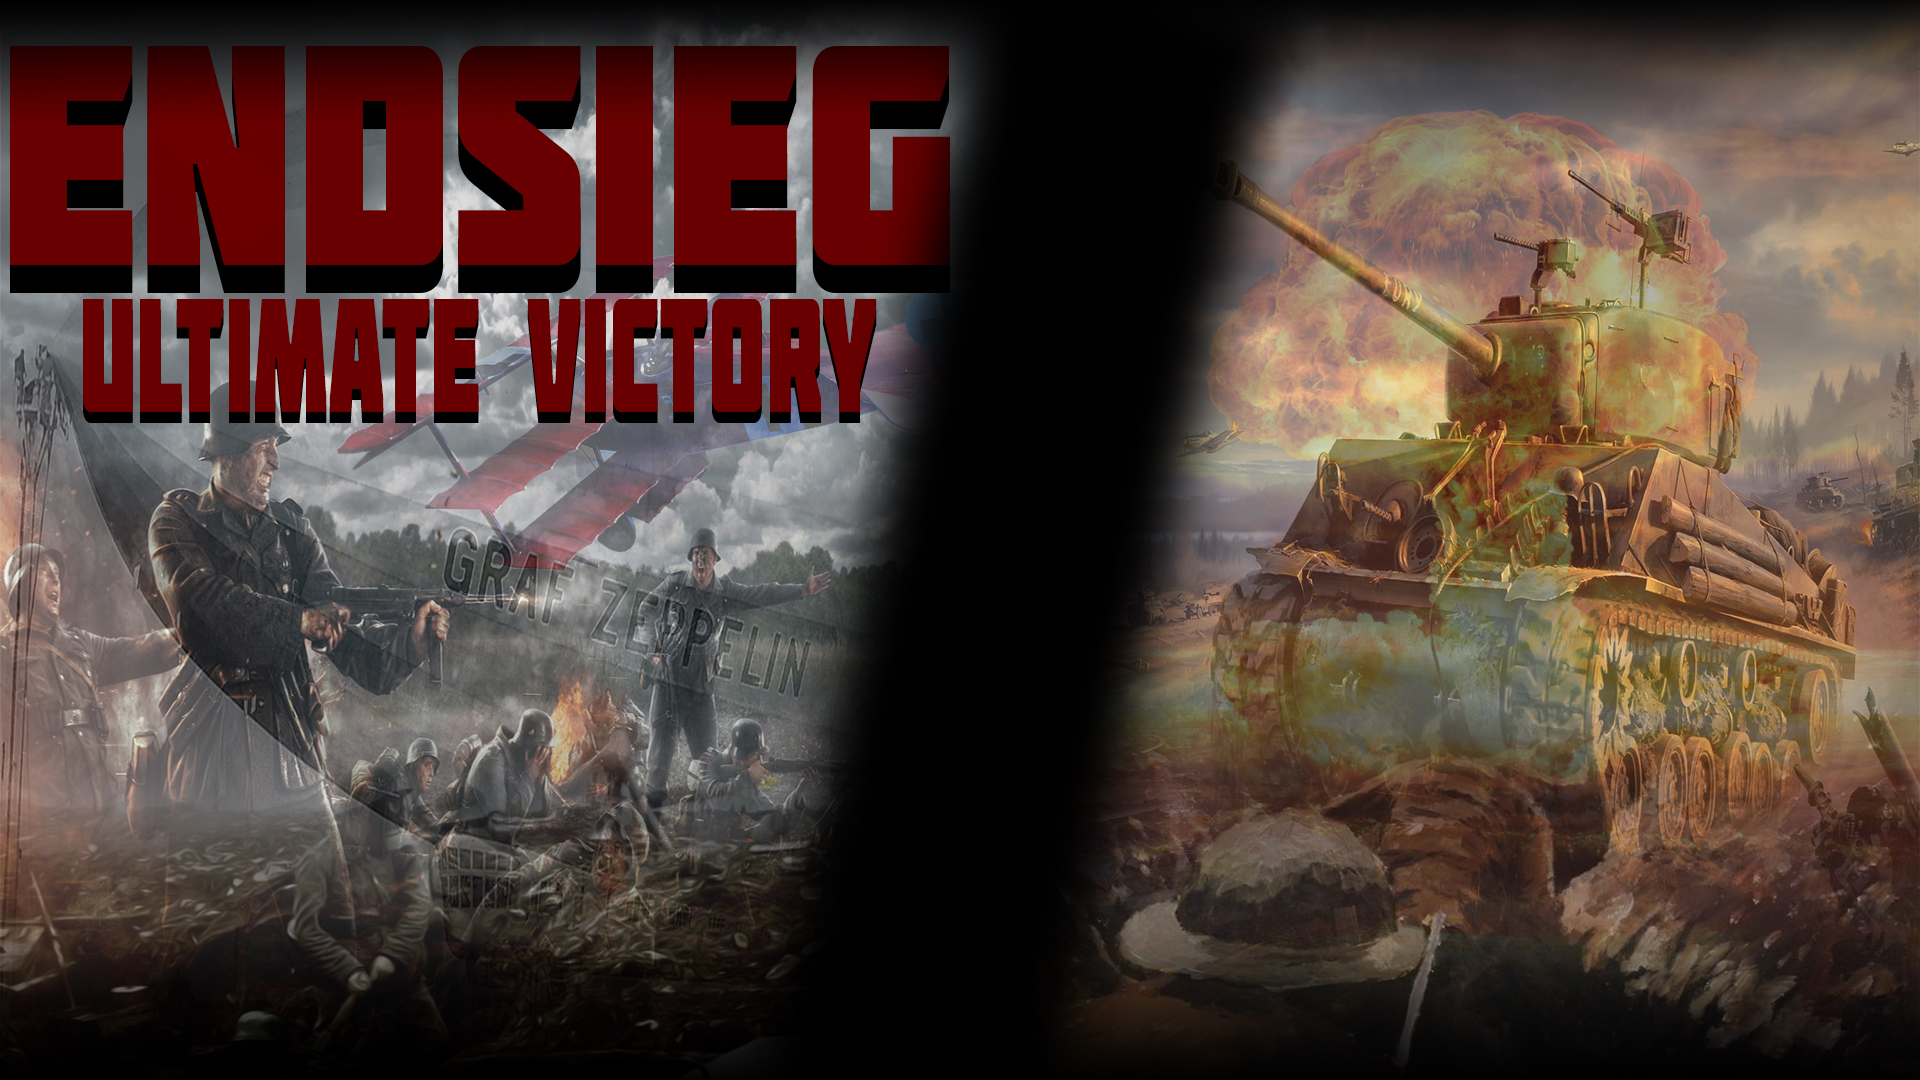 Endsieg: Ultimate Victory mod for Hearts of Iron IV - Mod DB